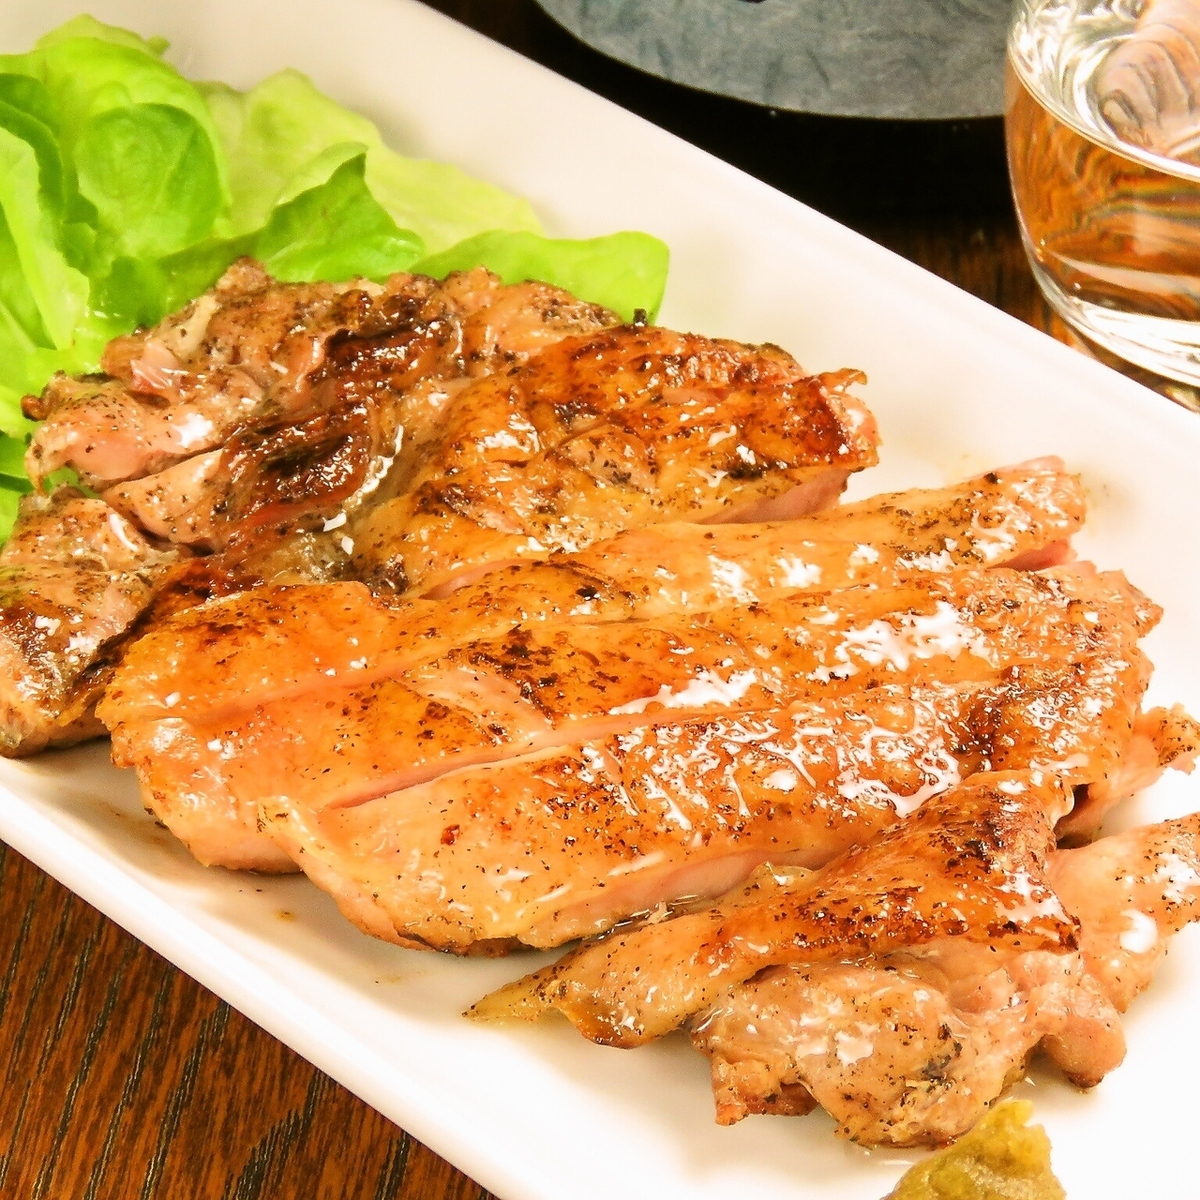 Charcoal grilling of Yanbare young chicken from Okinawa Prefecture